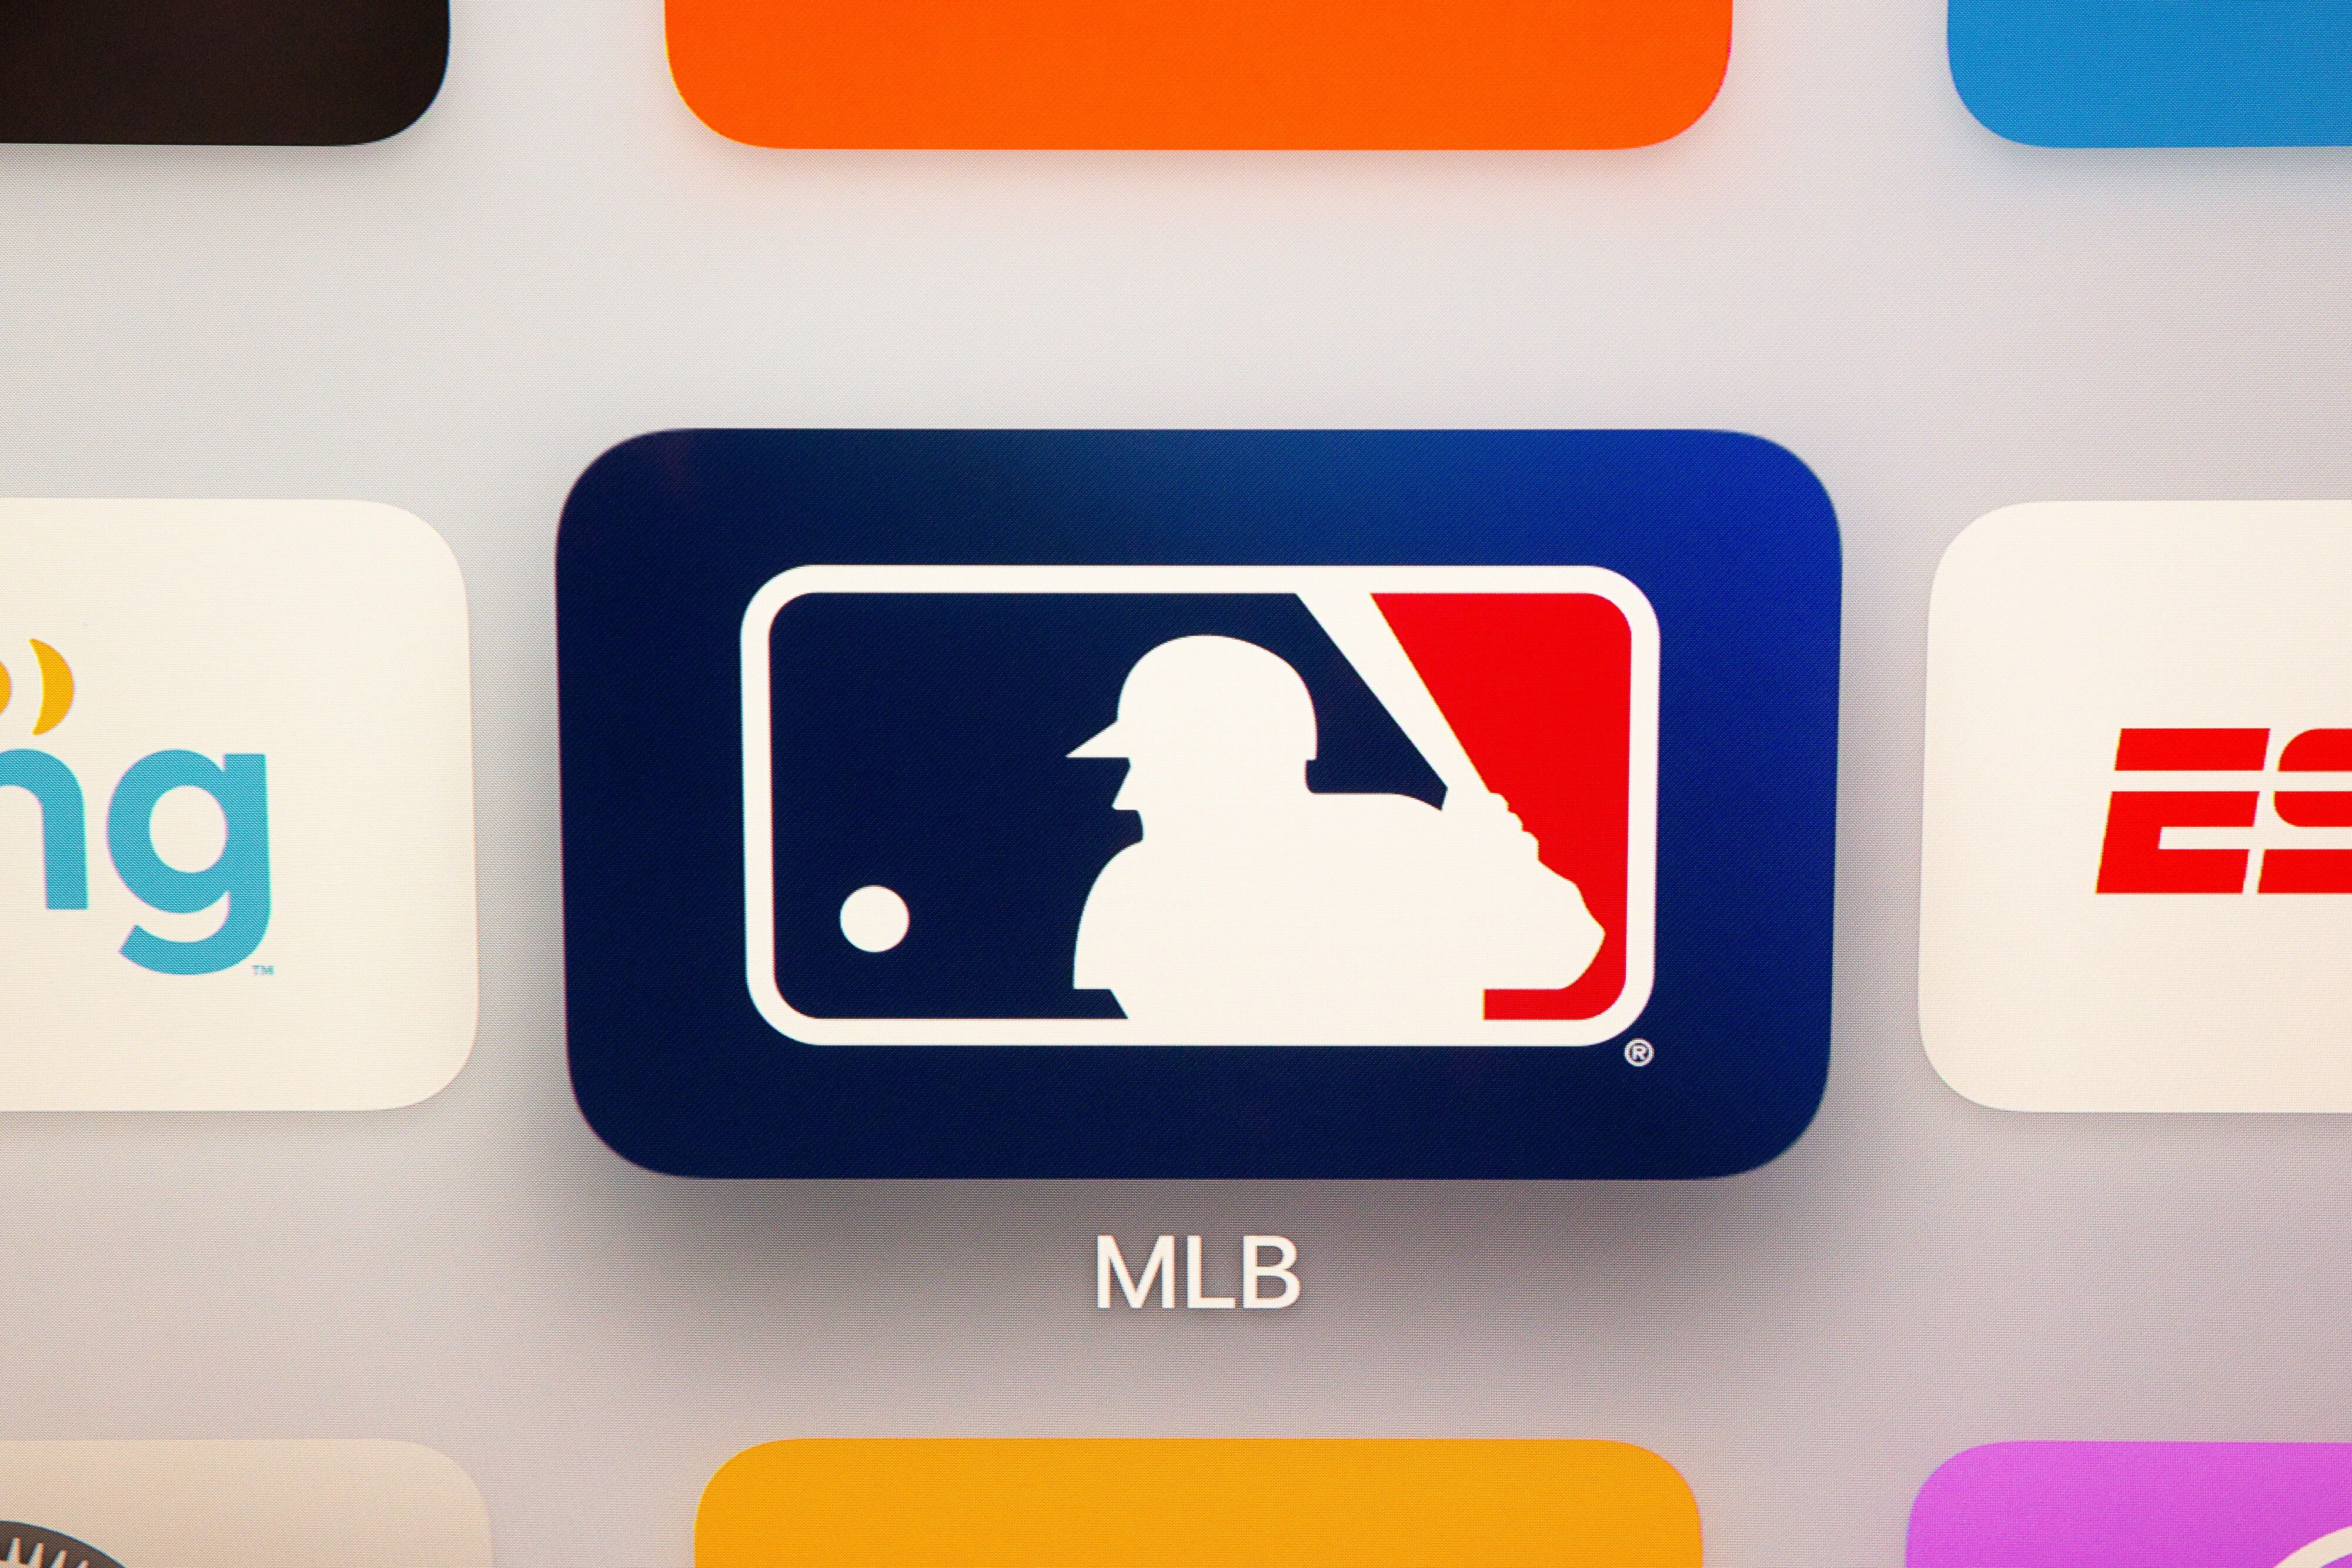 014-mlb-tv-streaming-app-2021-cnet-review